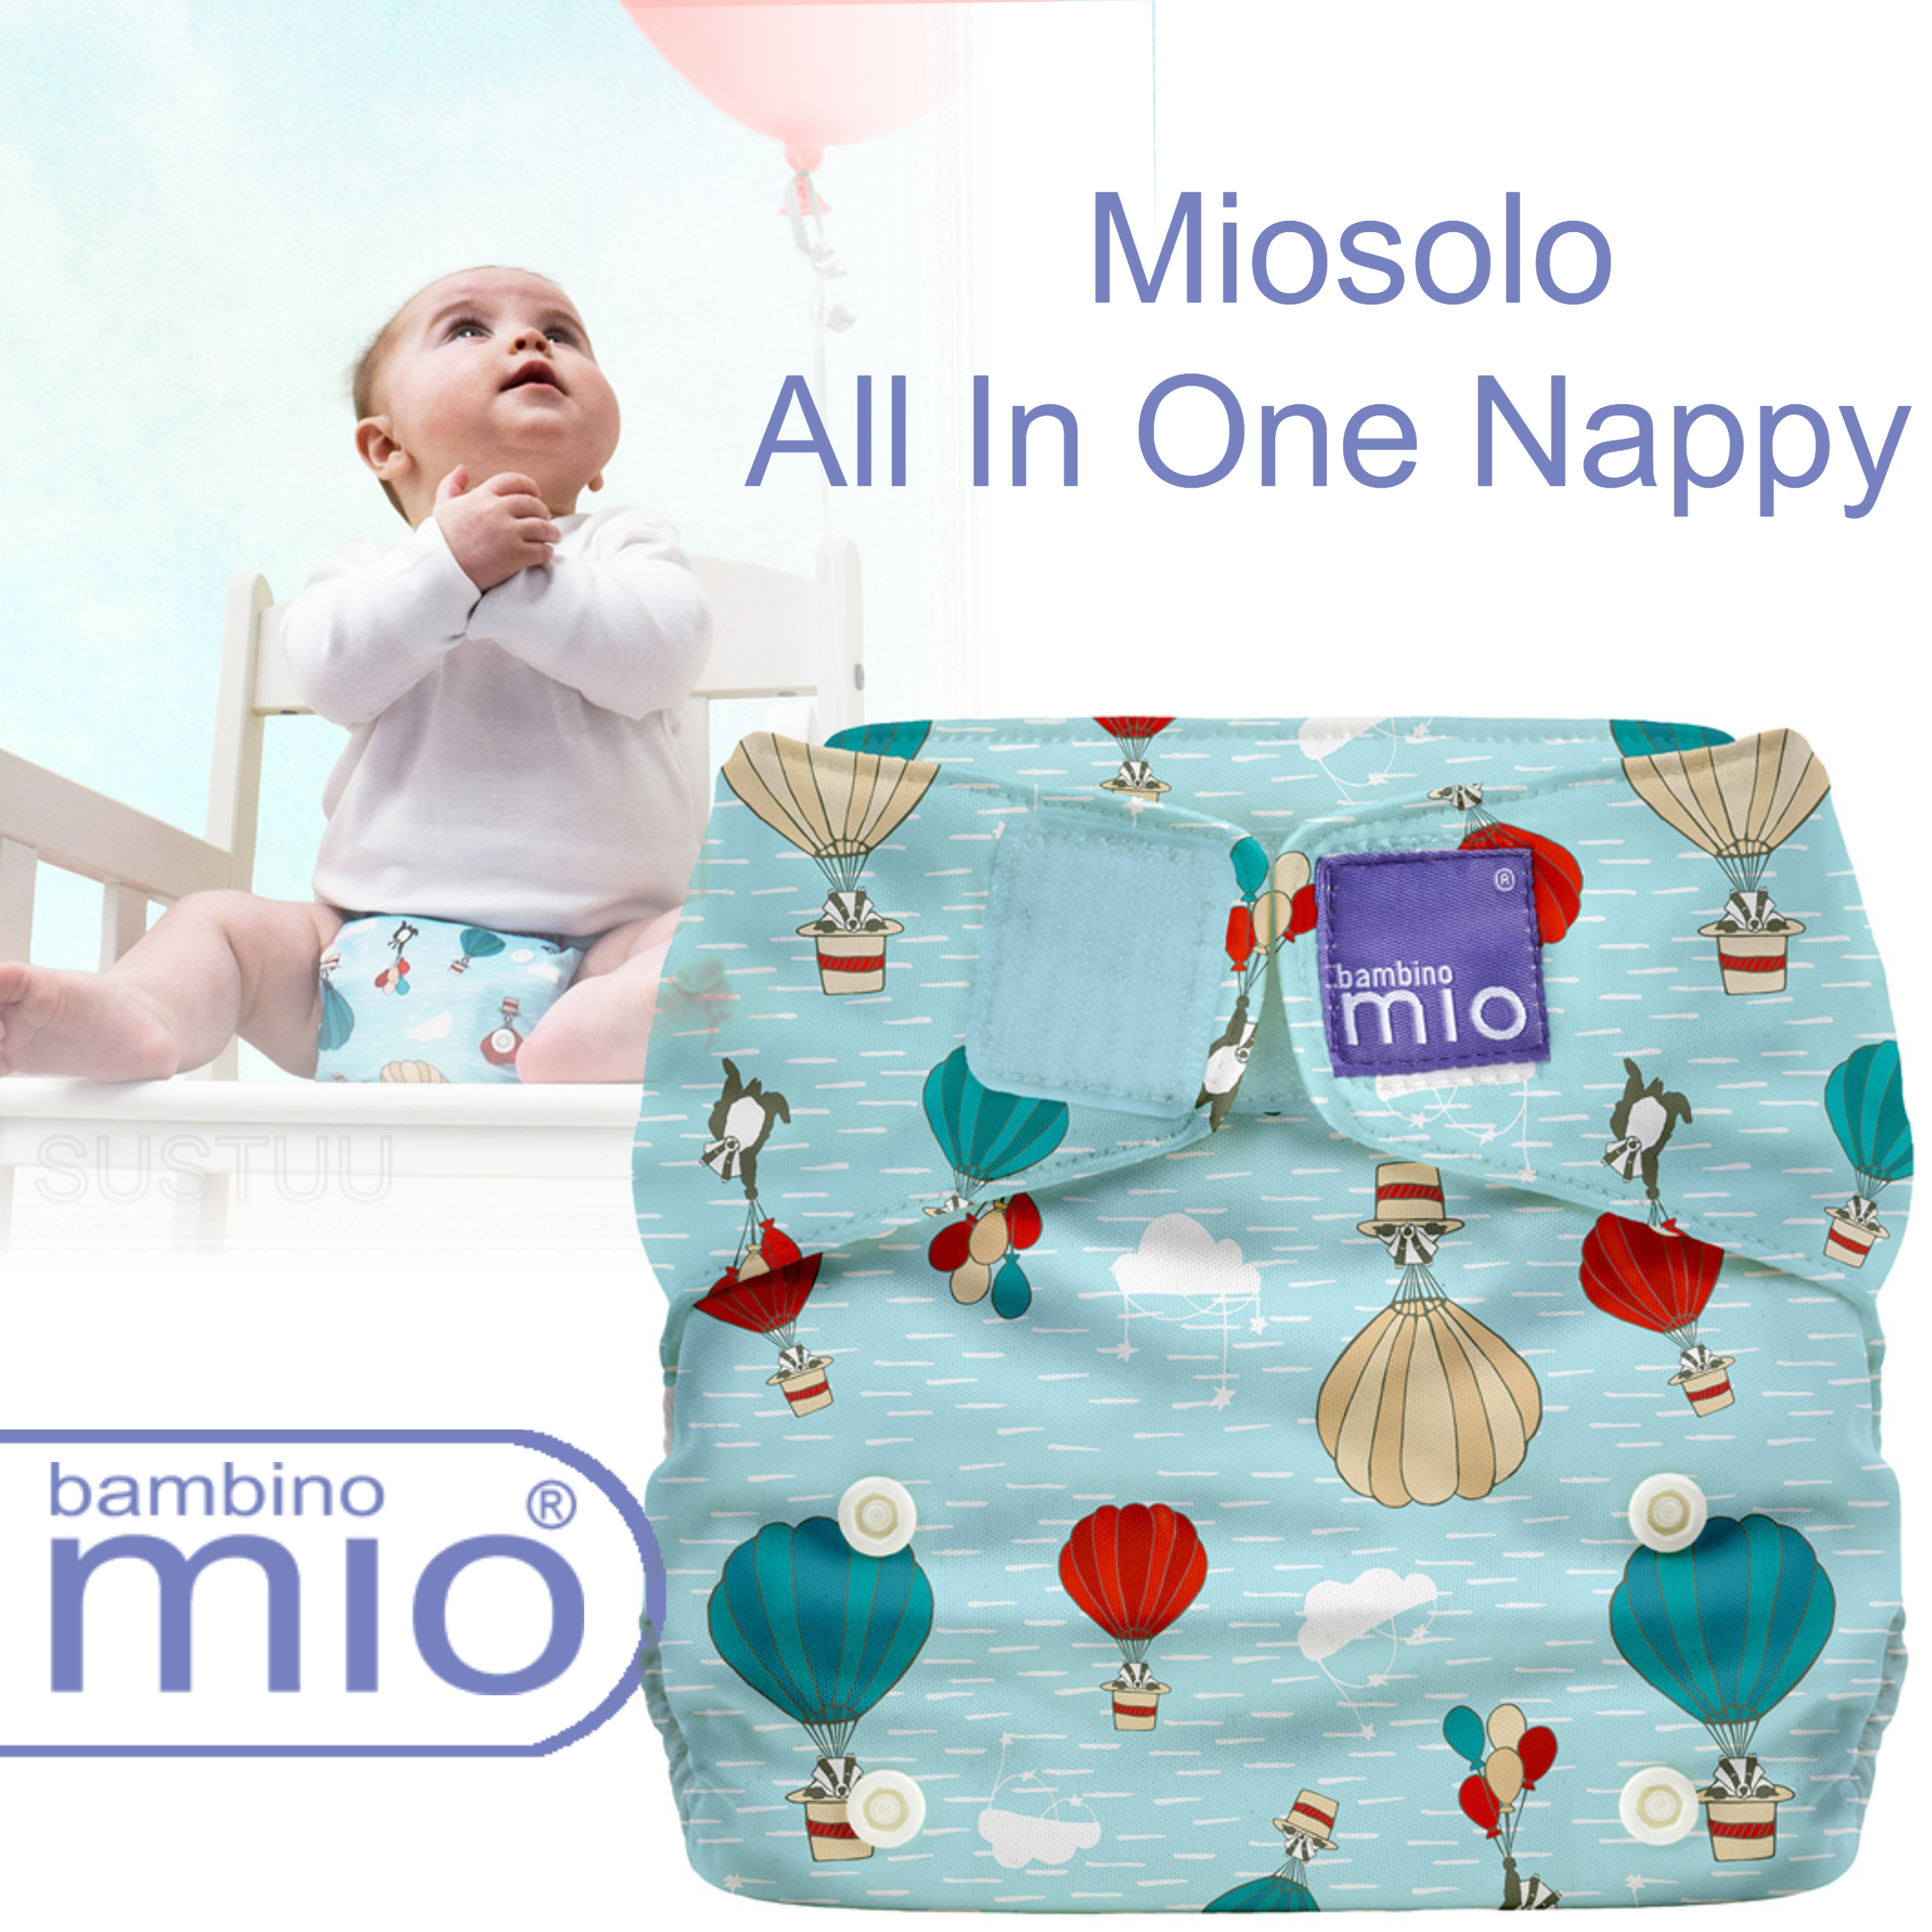 Bambino Mio Miosolo All In One Nappy|Polyester|For Baby No Moisturiser|Sky Ride